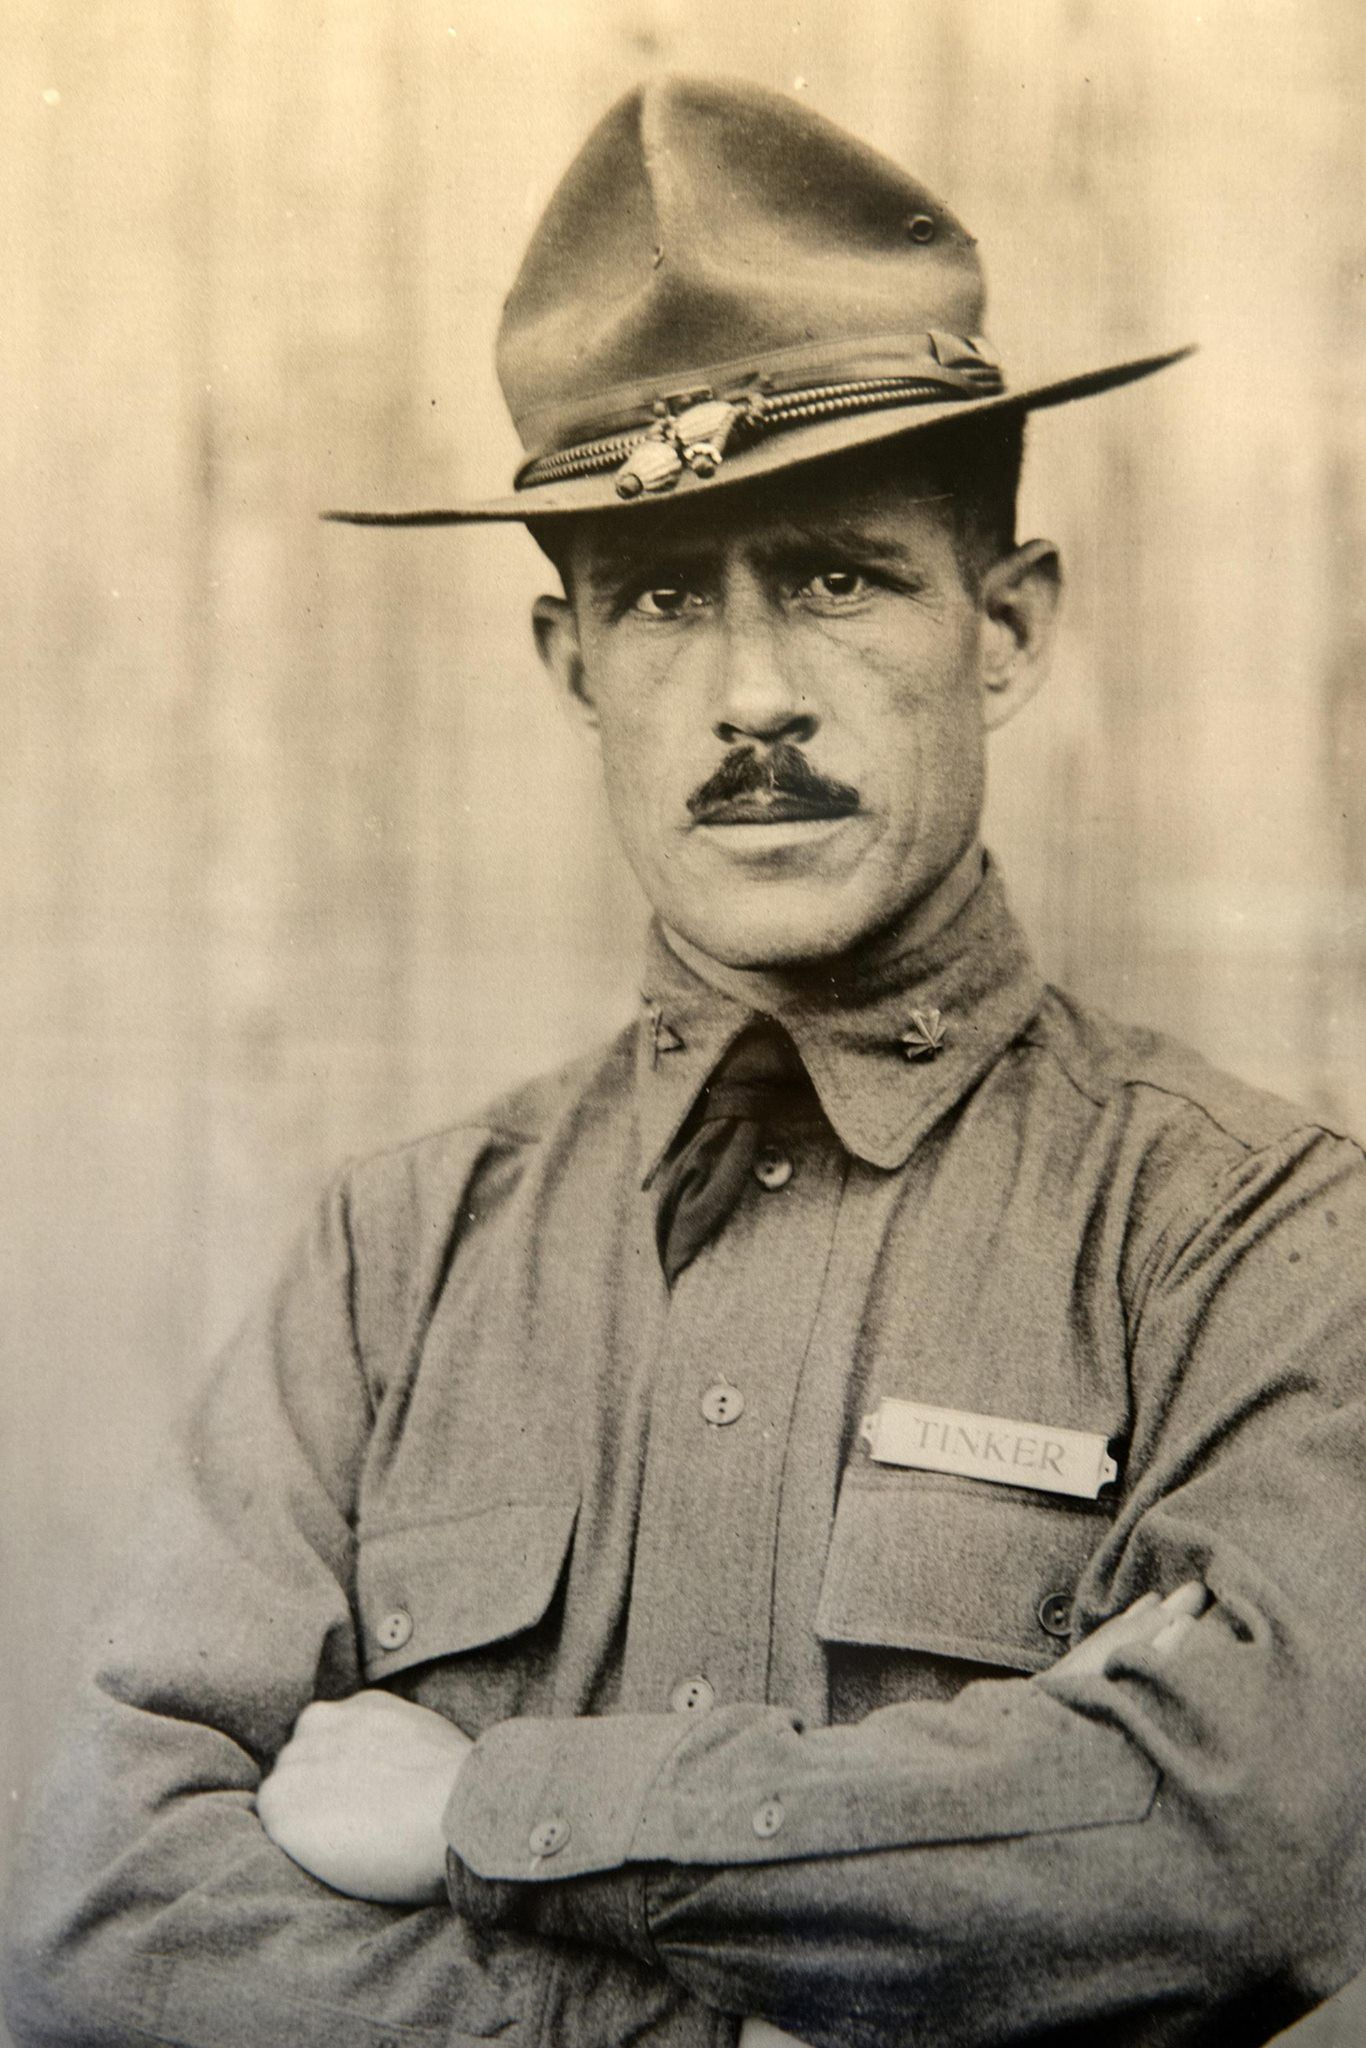 Maj. Gen. Clarence L. Tinker was the highest ranking